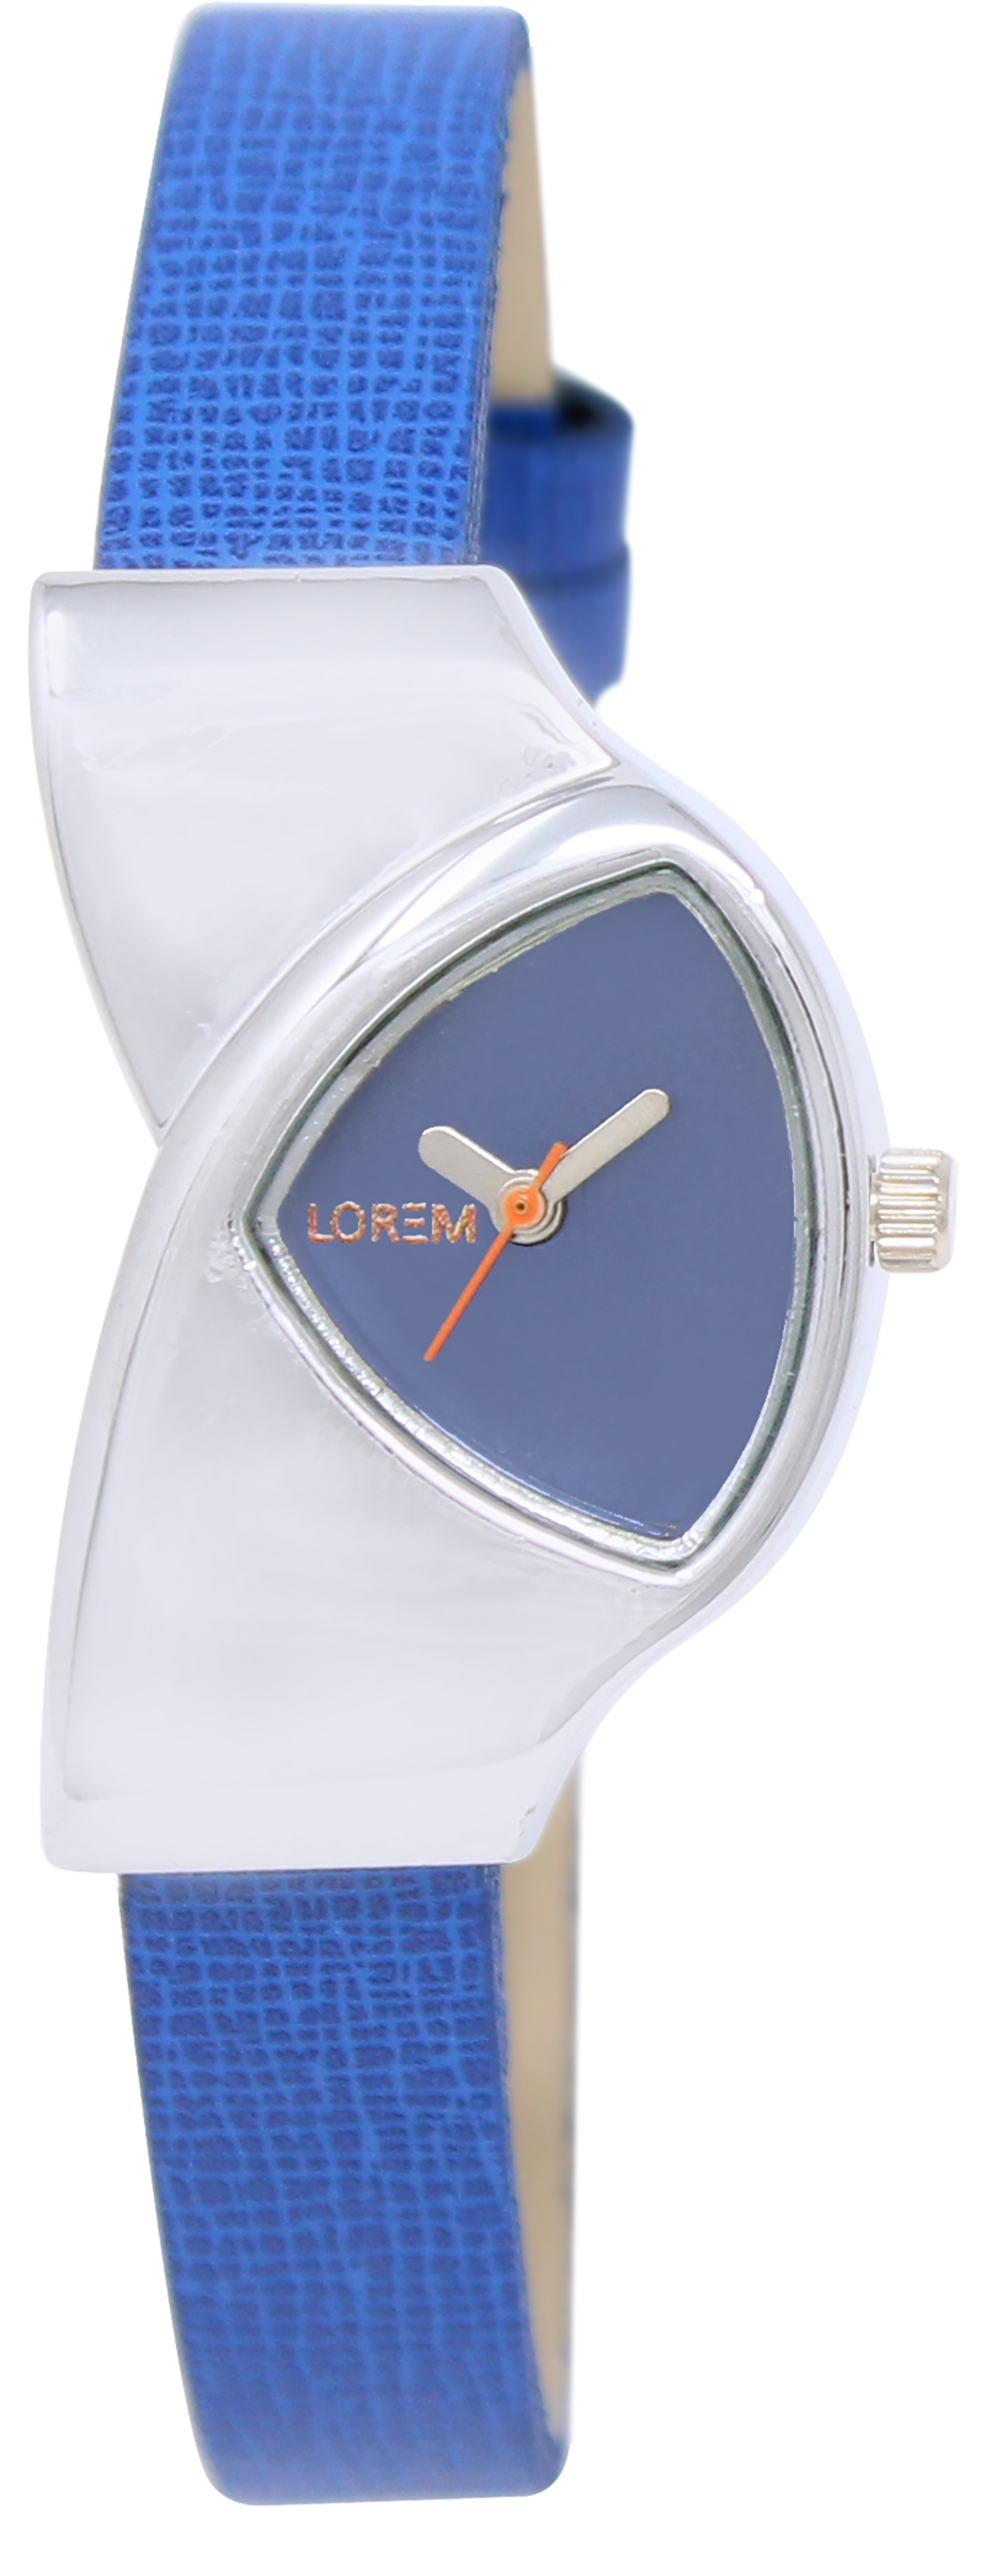 LOREM  Arrival Blue Leather Strap Stylish Dial Watch - For Girls